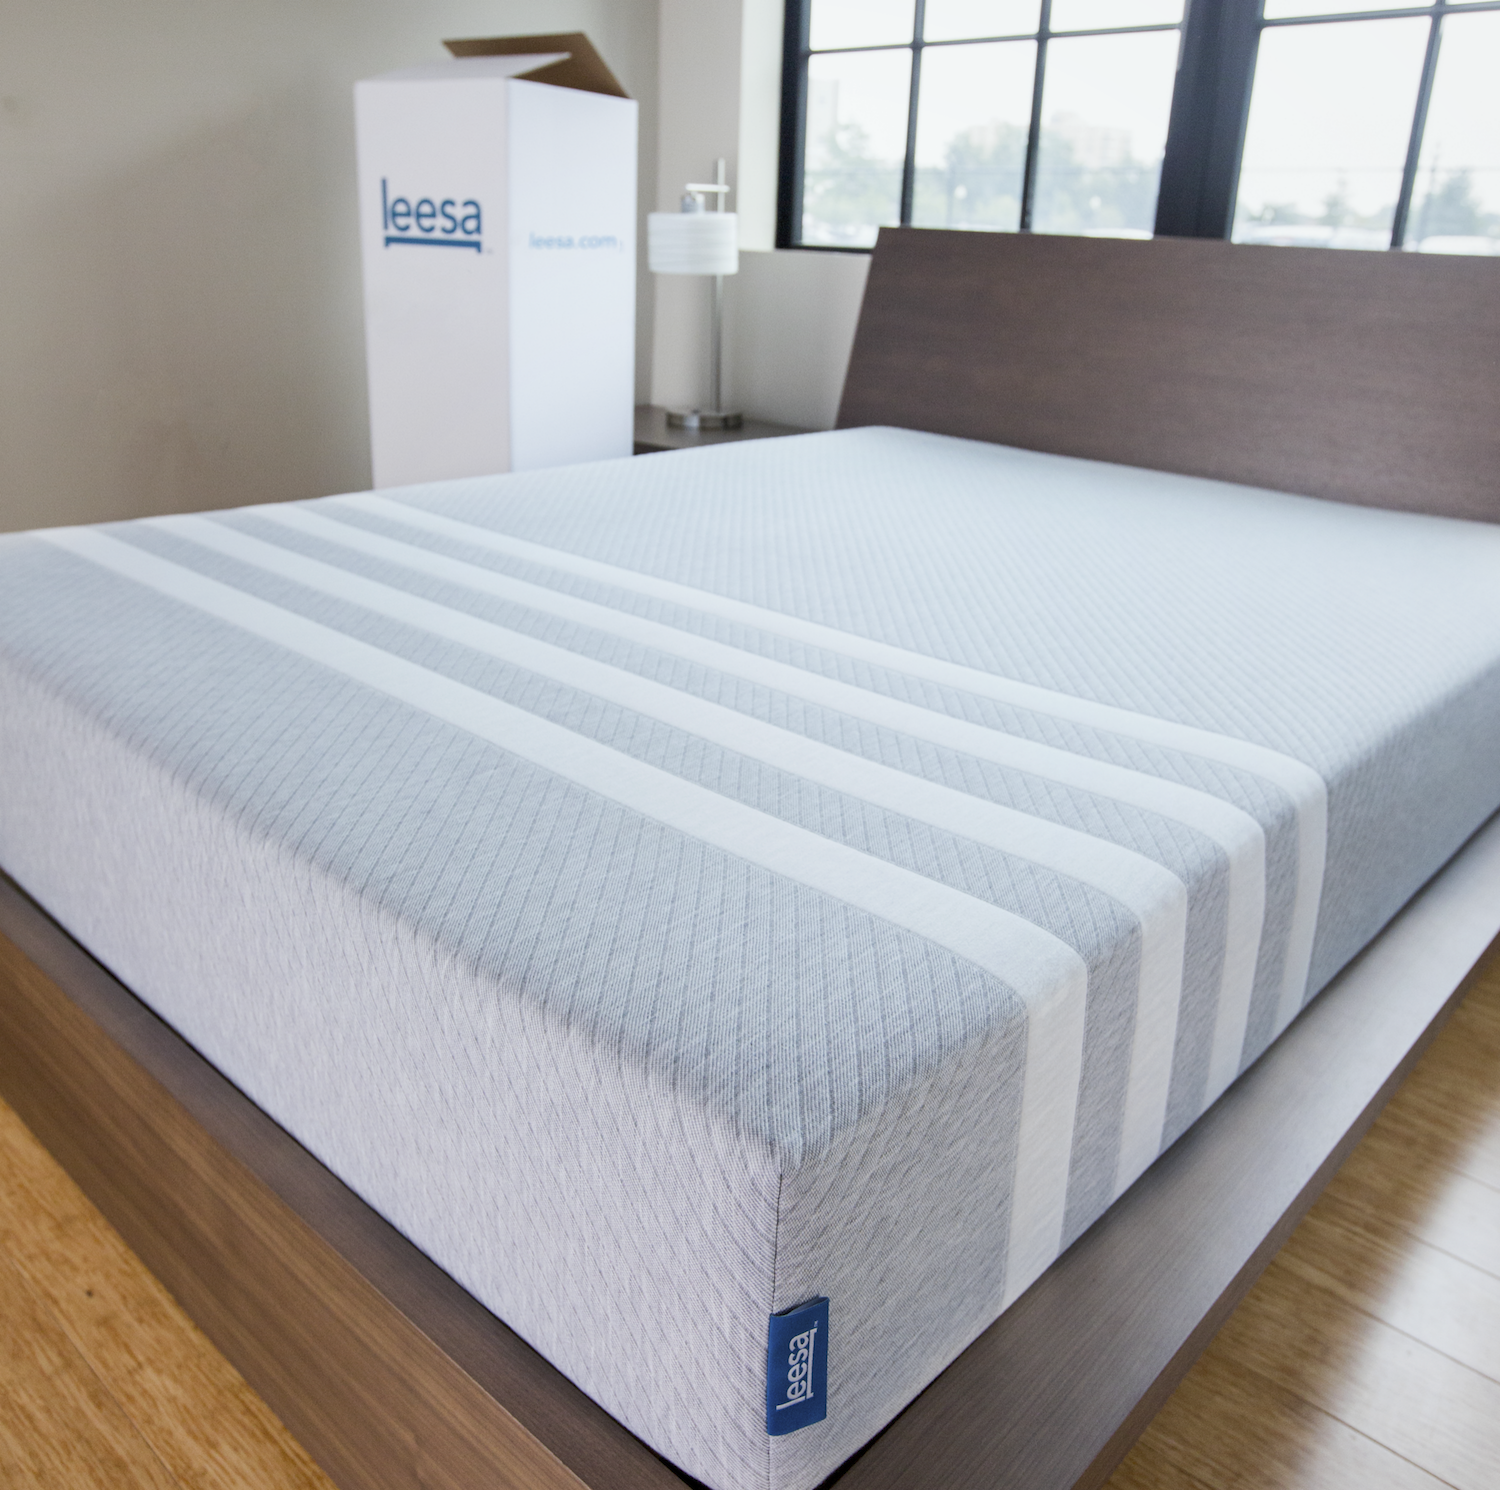 protector elegant best of pedic the mattress is fresh for bed snuggle bugs what